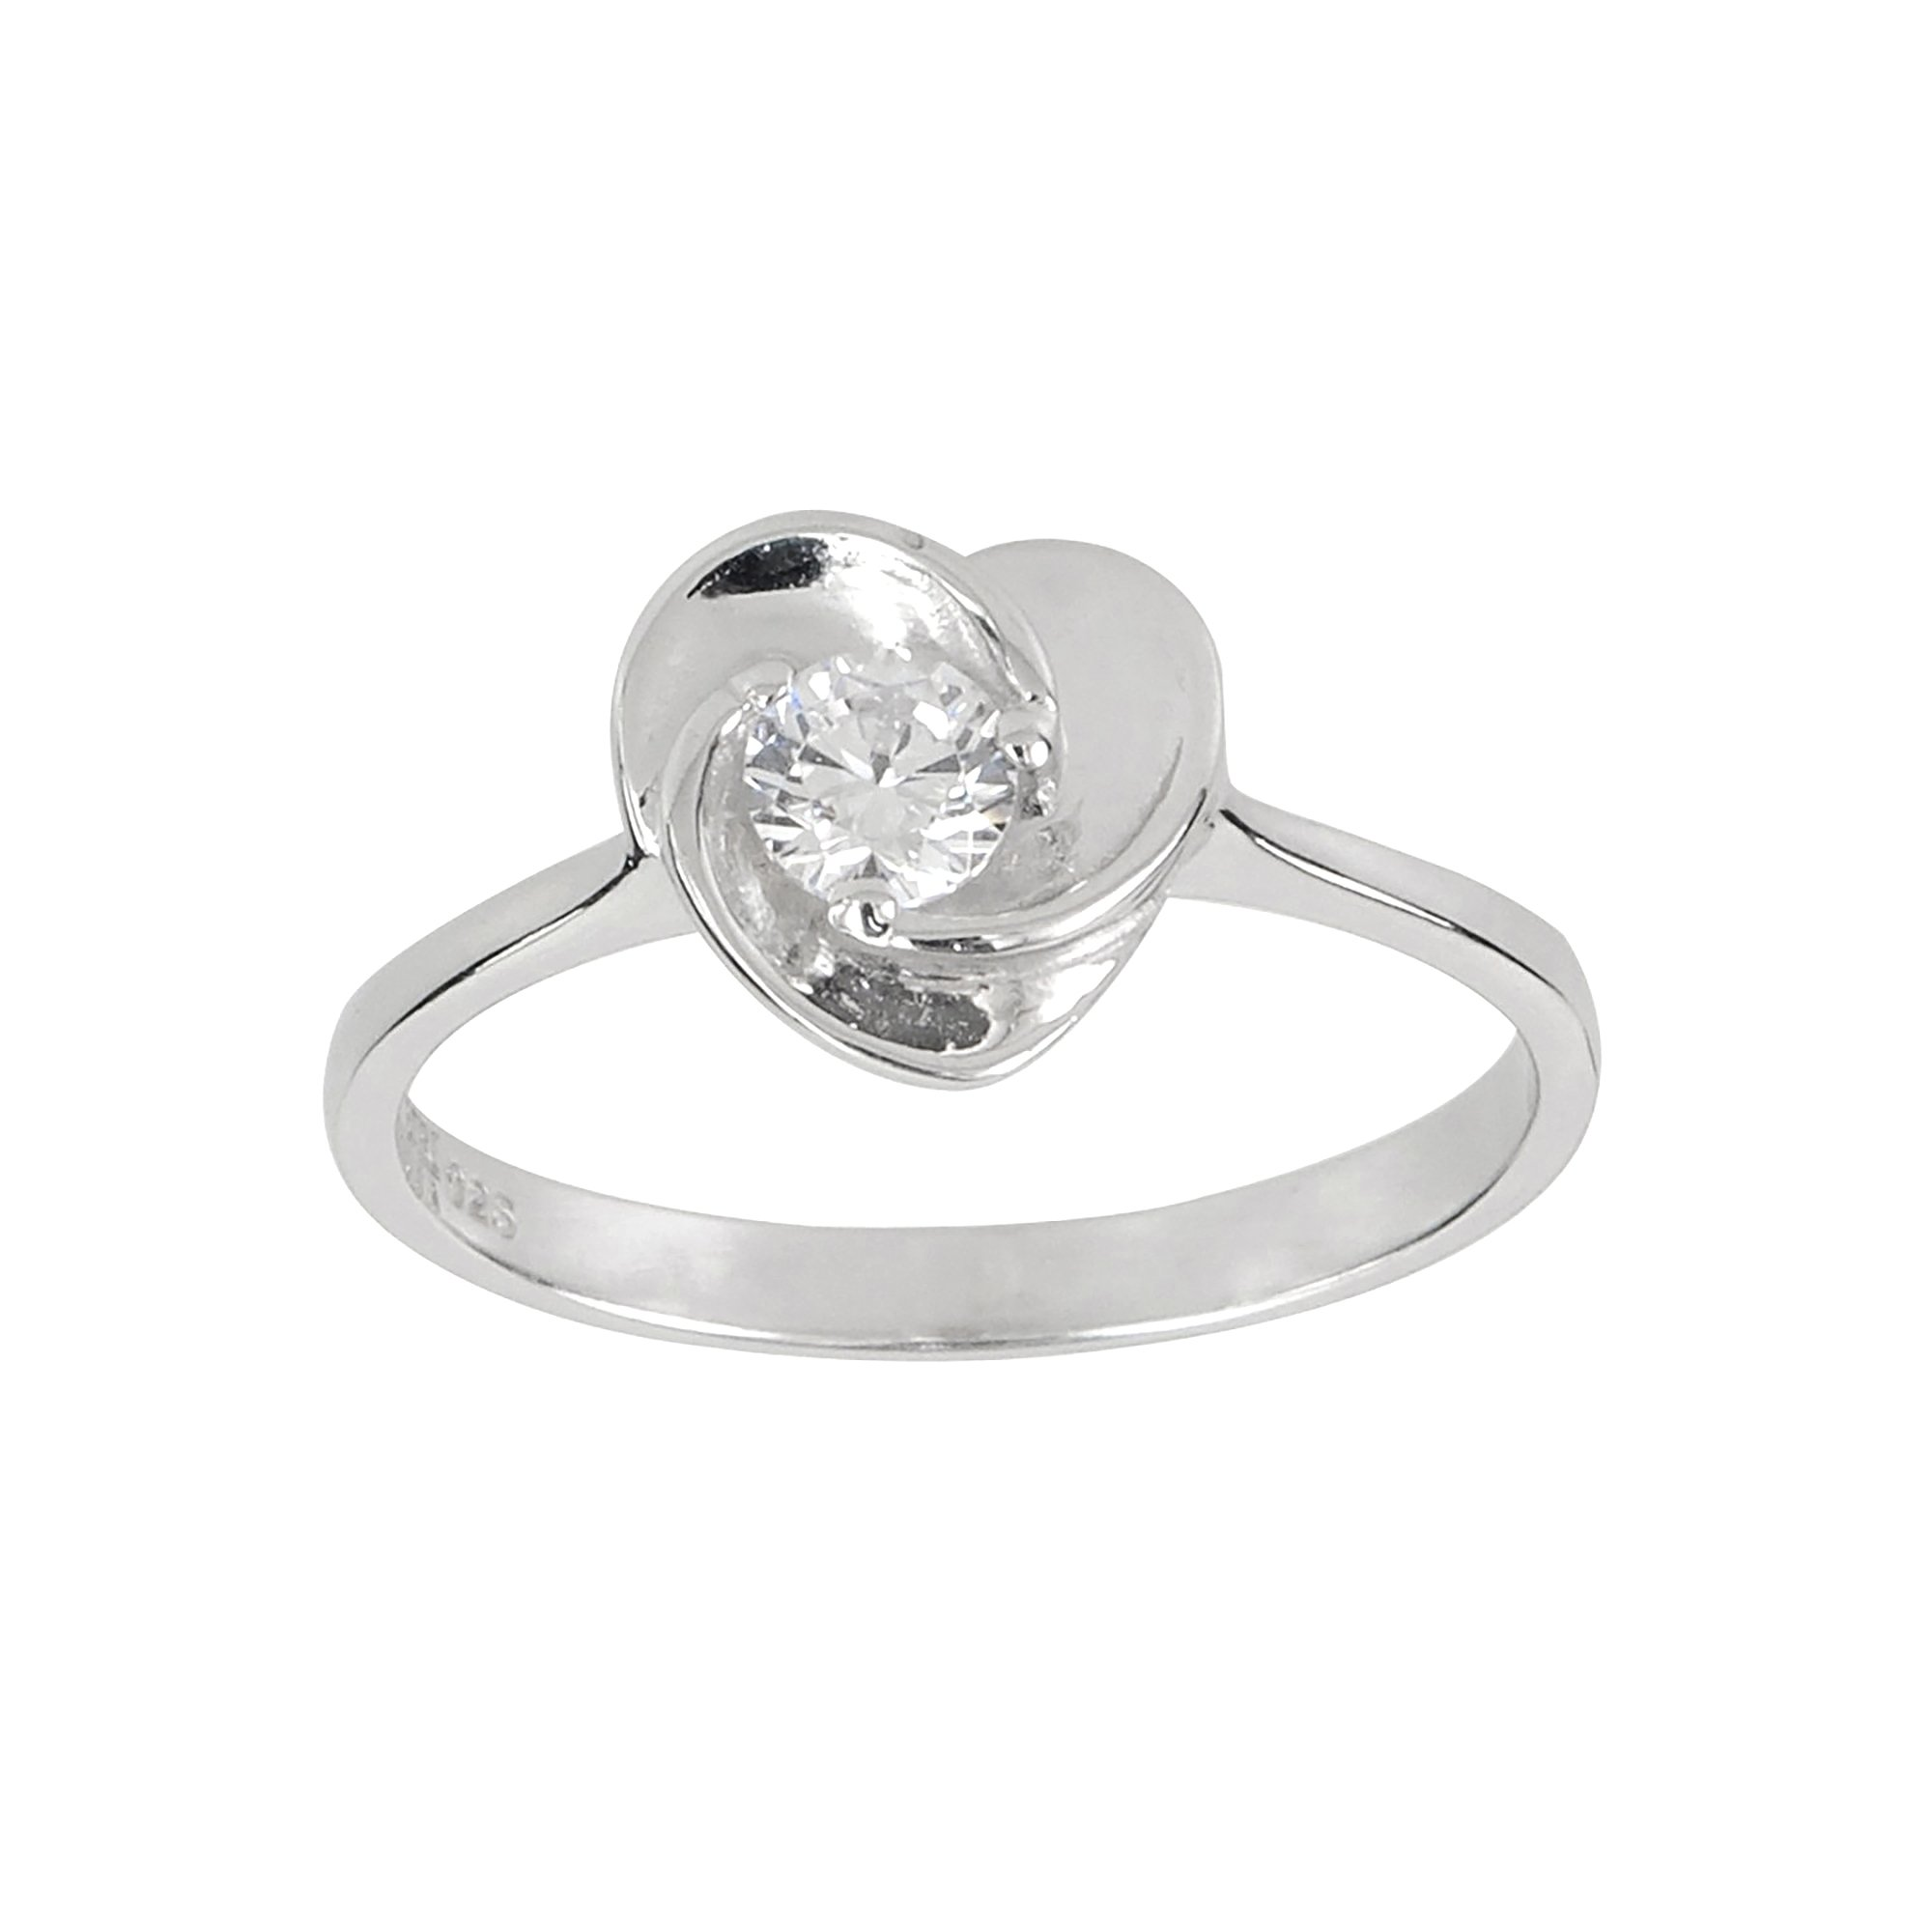 Aura by TJM Sterling Silver Round Cut 0.40 cts White CZ Floral Ring